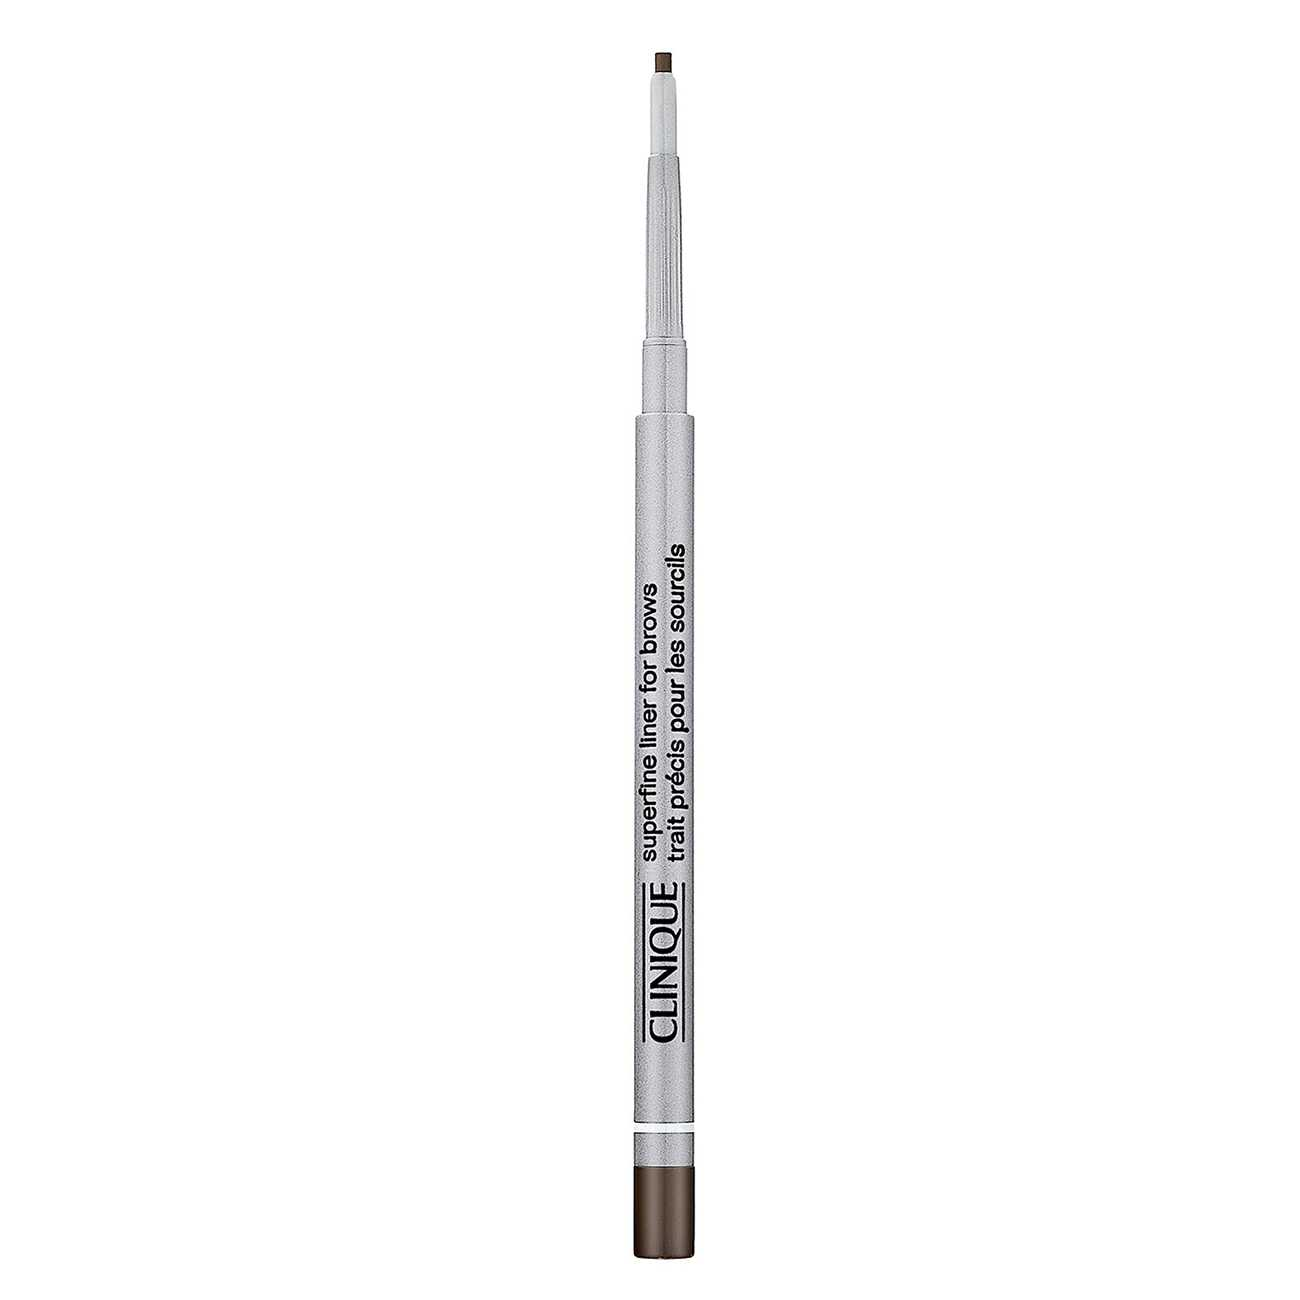 SUPERFINE LINE FOR BROWS 8 G Soft Brown 2 imagine produs